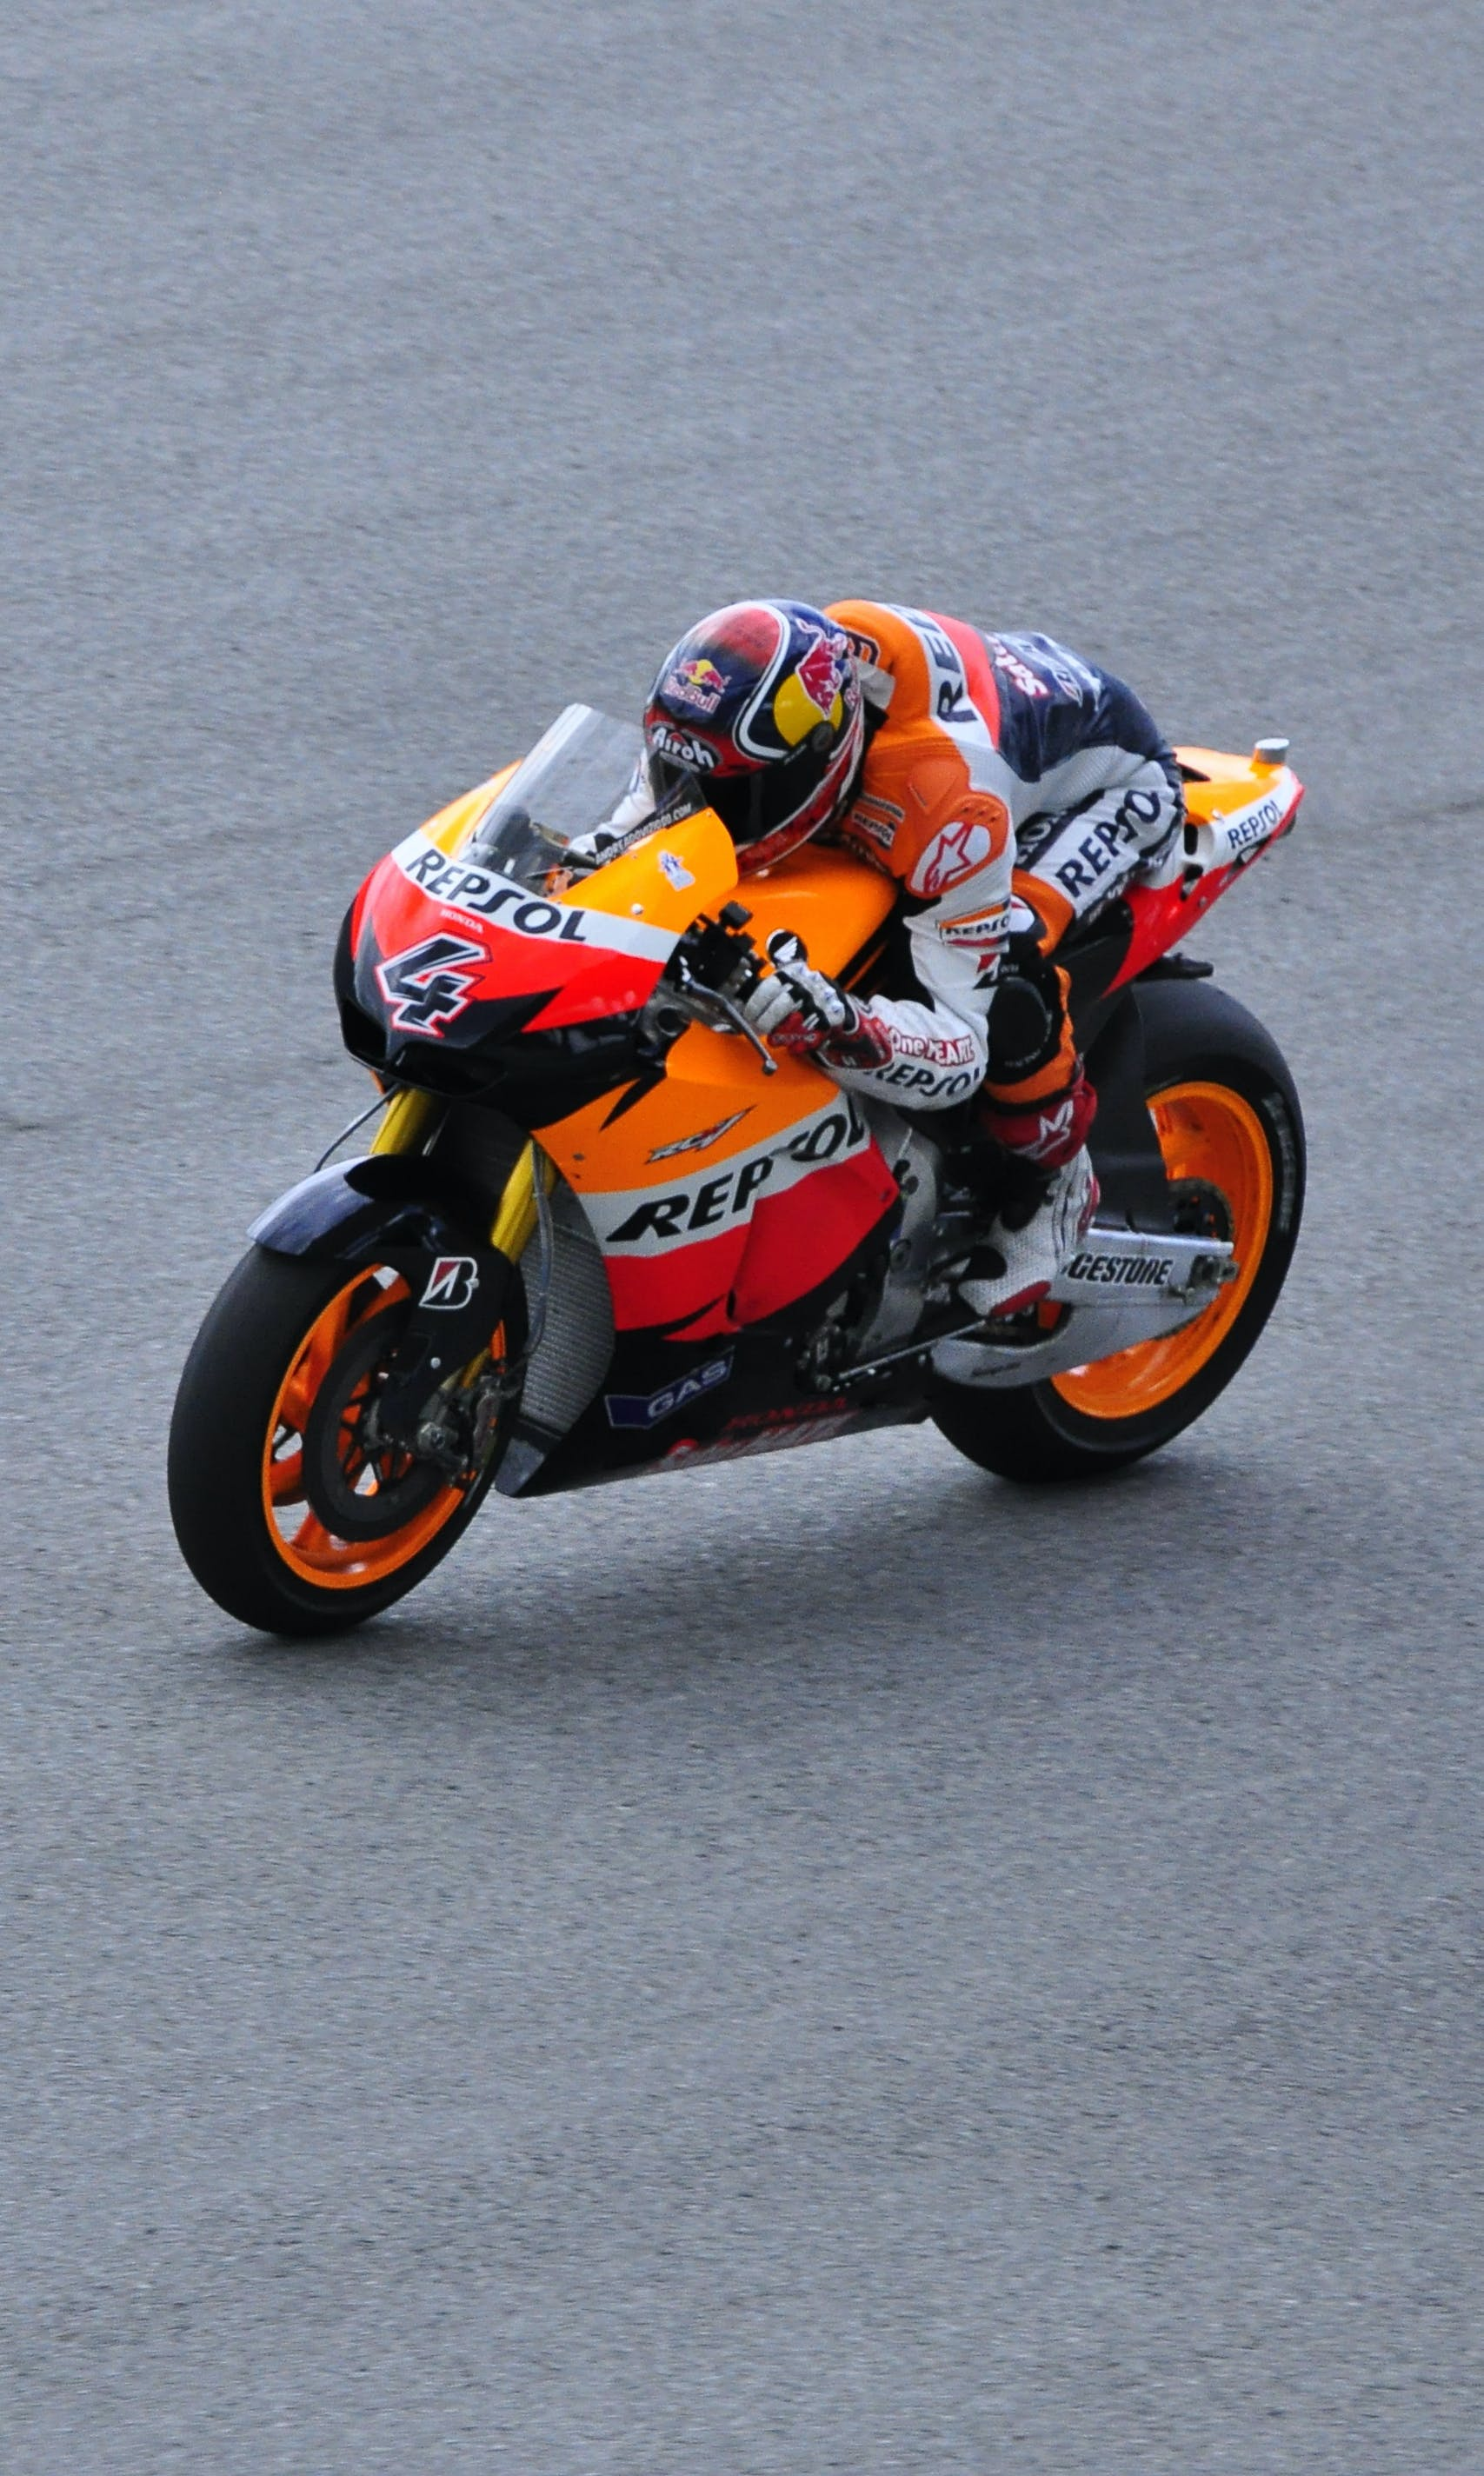 Repsol 4 Motogp on Race